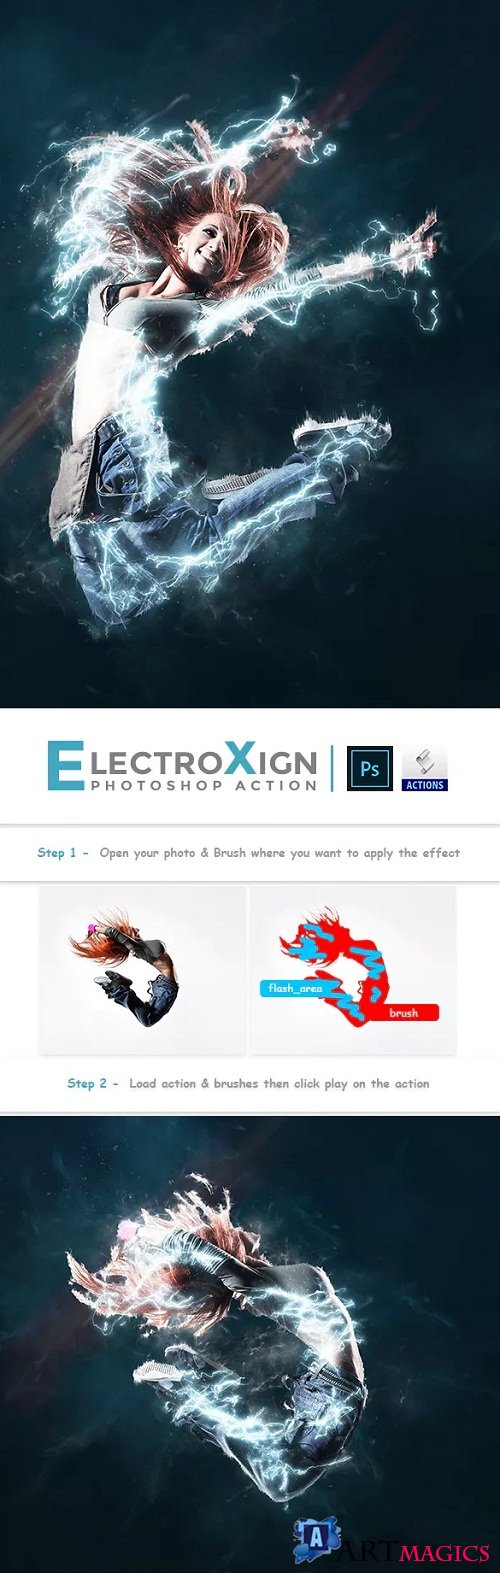 ElectroXign | PS Action 23231962